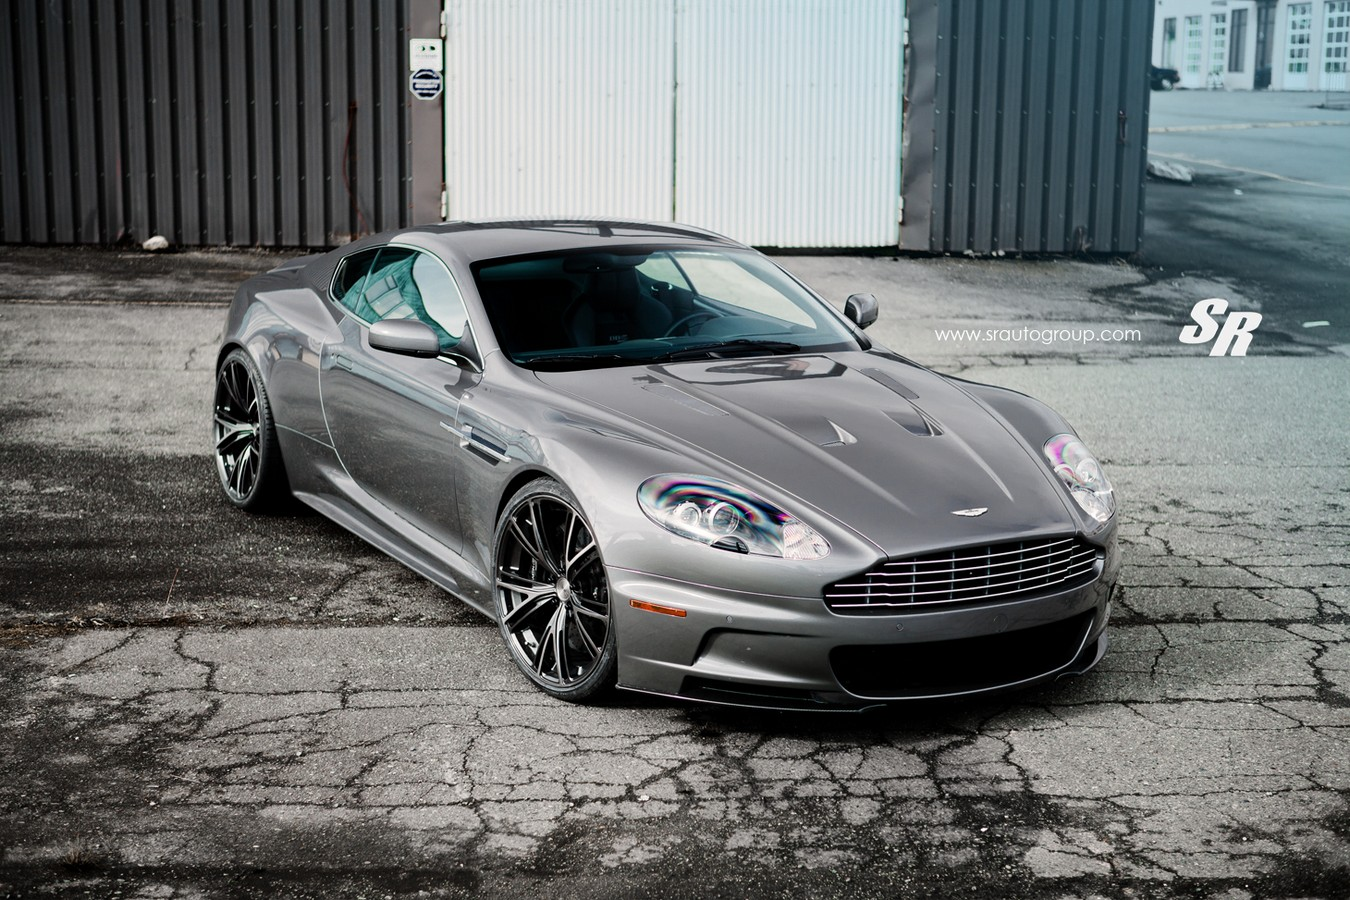 space gray aston martin dbs with pur 9ine wheels gtspirit rh gtspirit com aston martin db9 manual or auto Aston Martin Vanquish